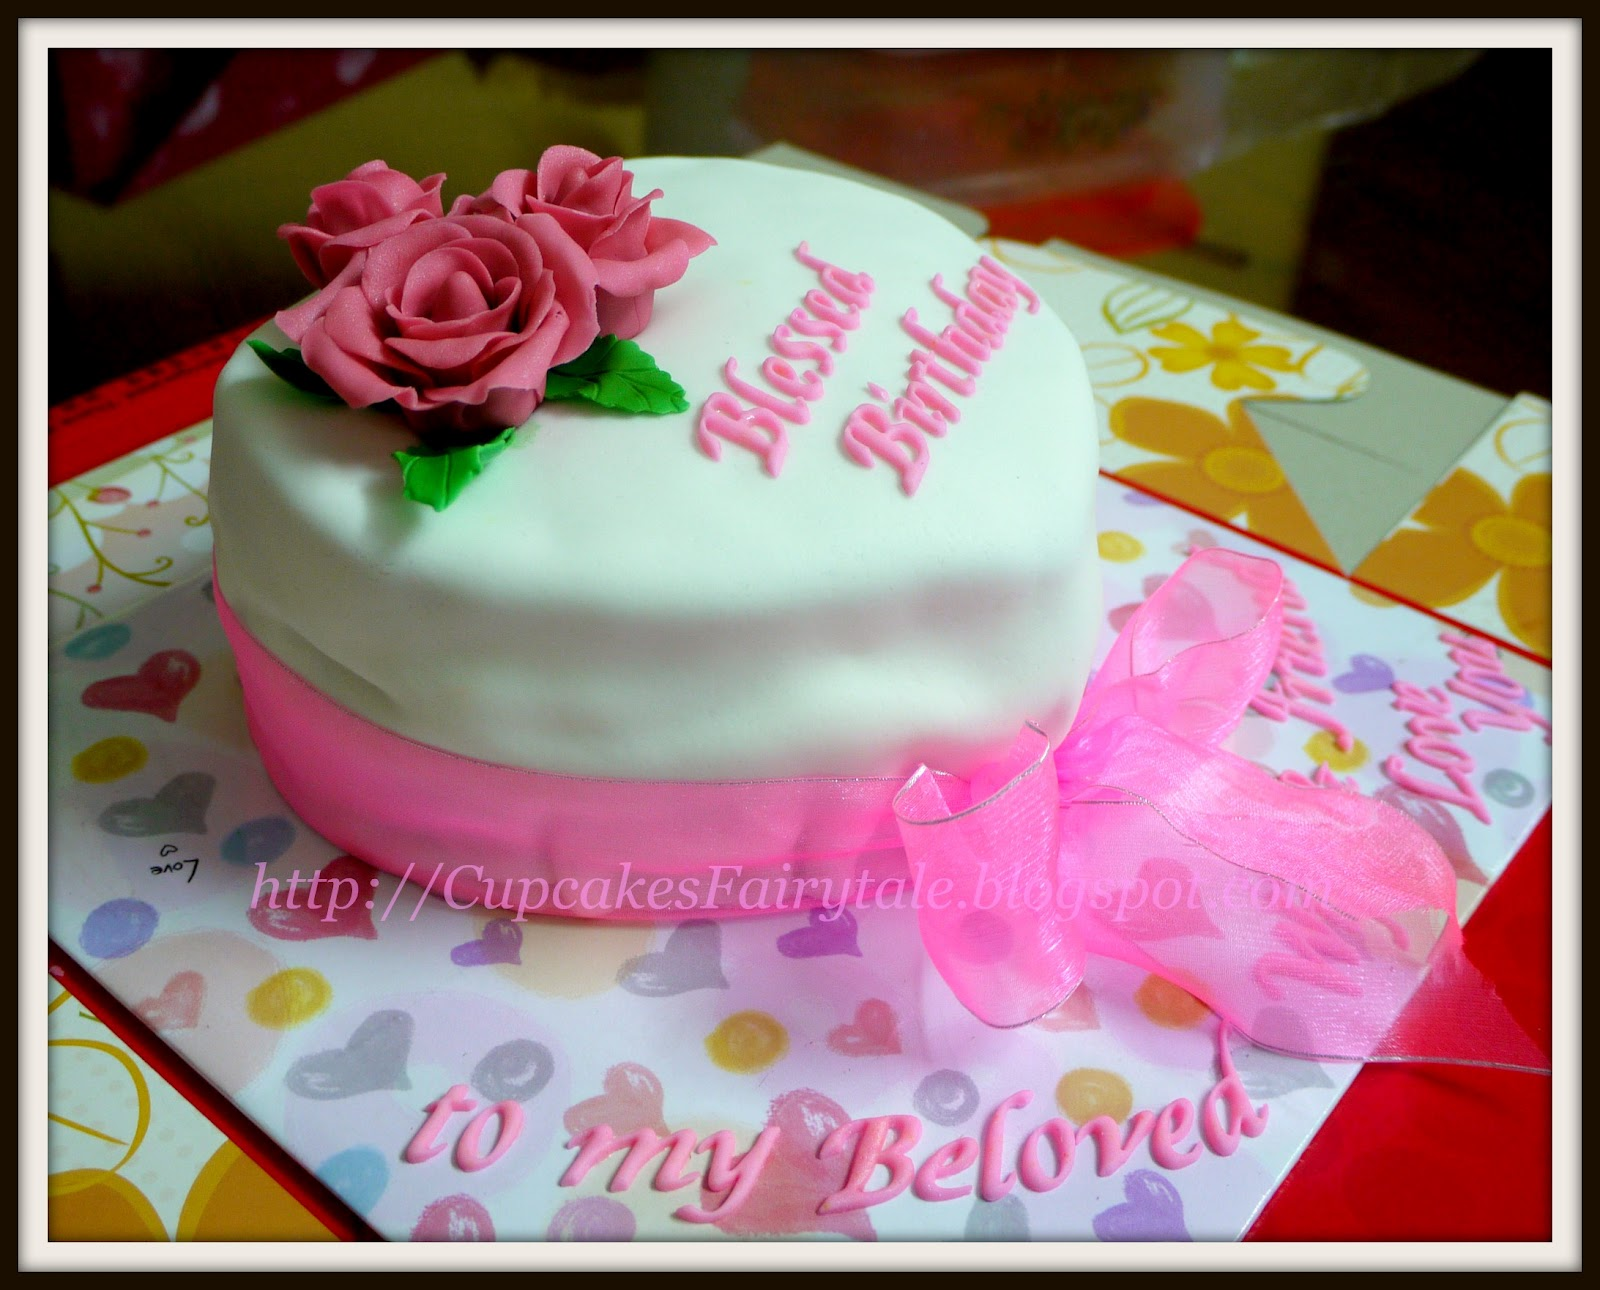 Birthday Cake For Husband With Wishes Image Inspiration of Cake